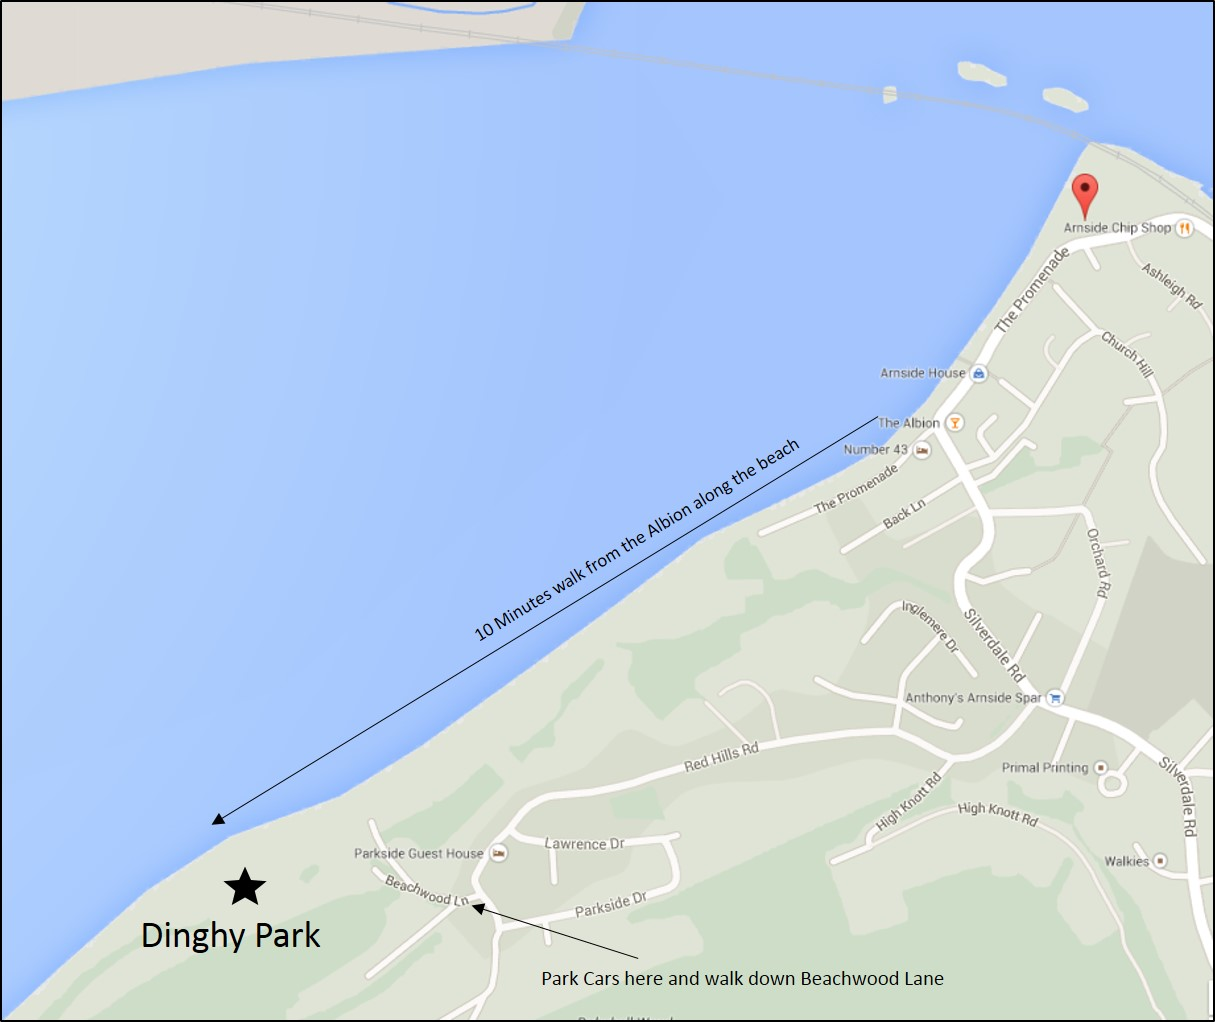 Dinghy Park Location